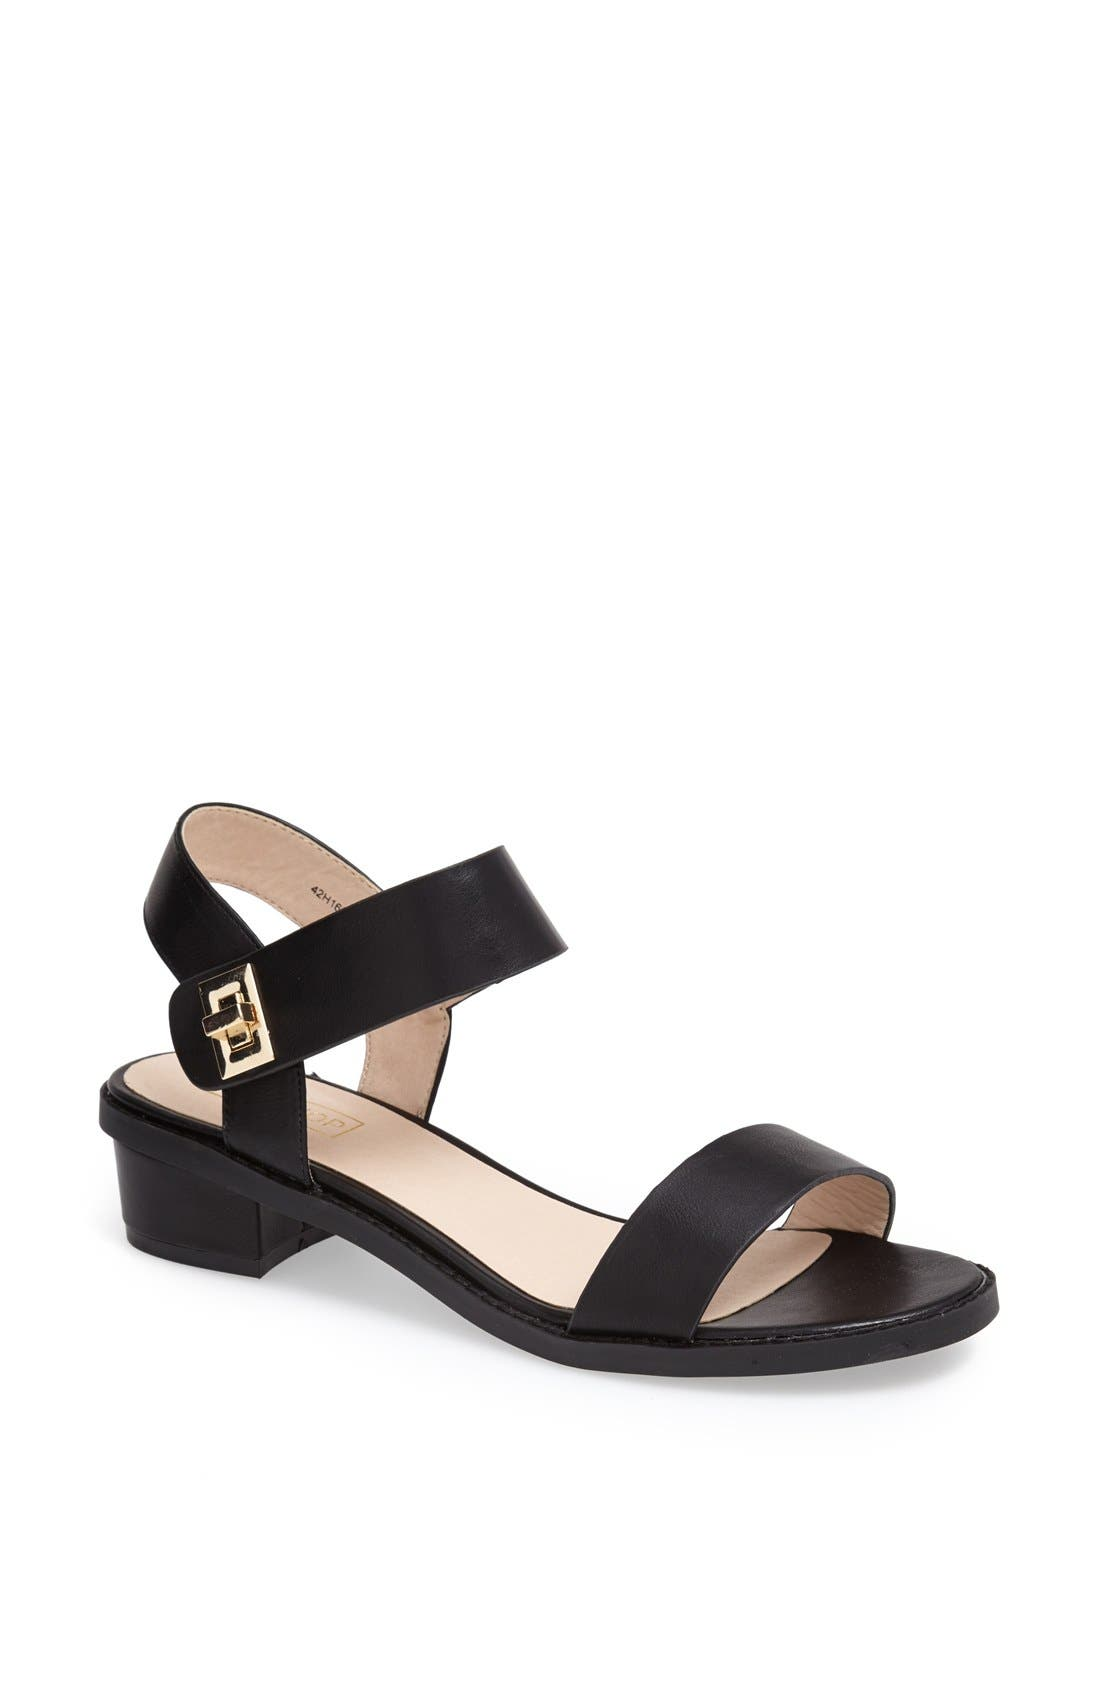 Alternate Image 1 Selected - Topshop 'Heartbreaker' Sandal